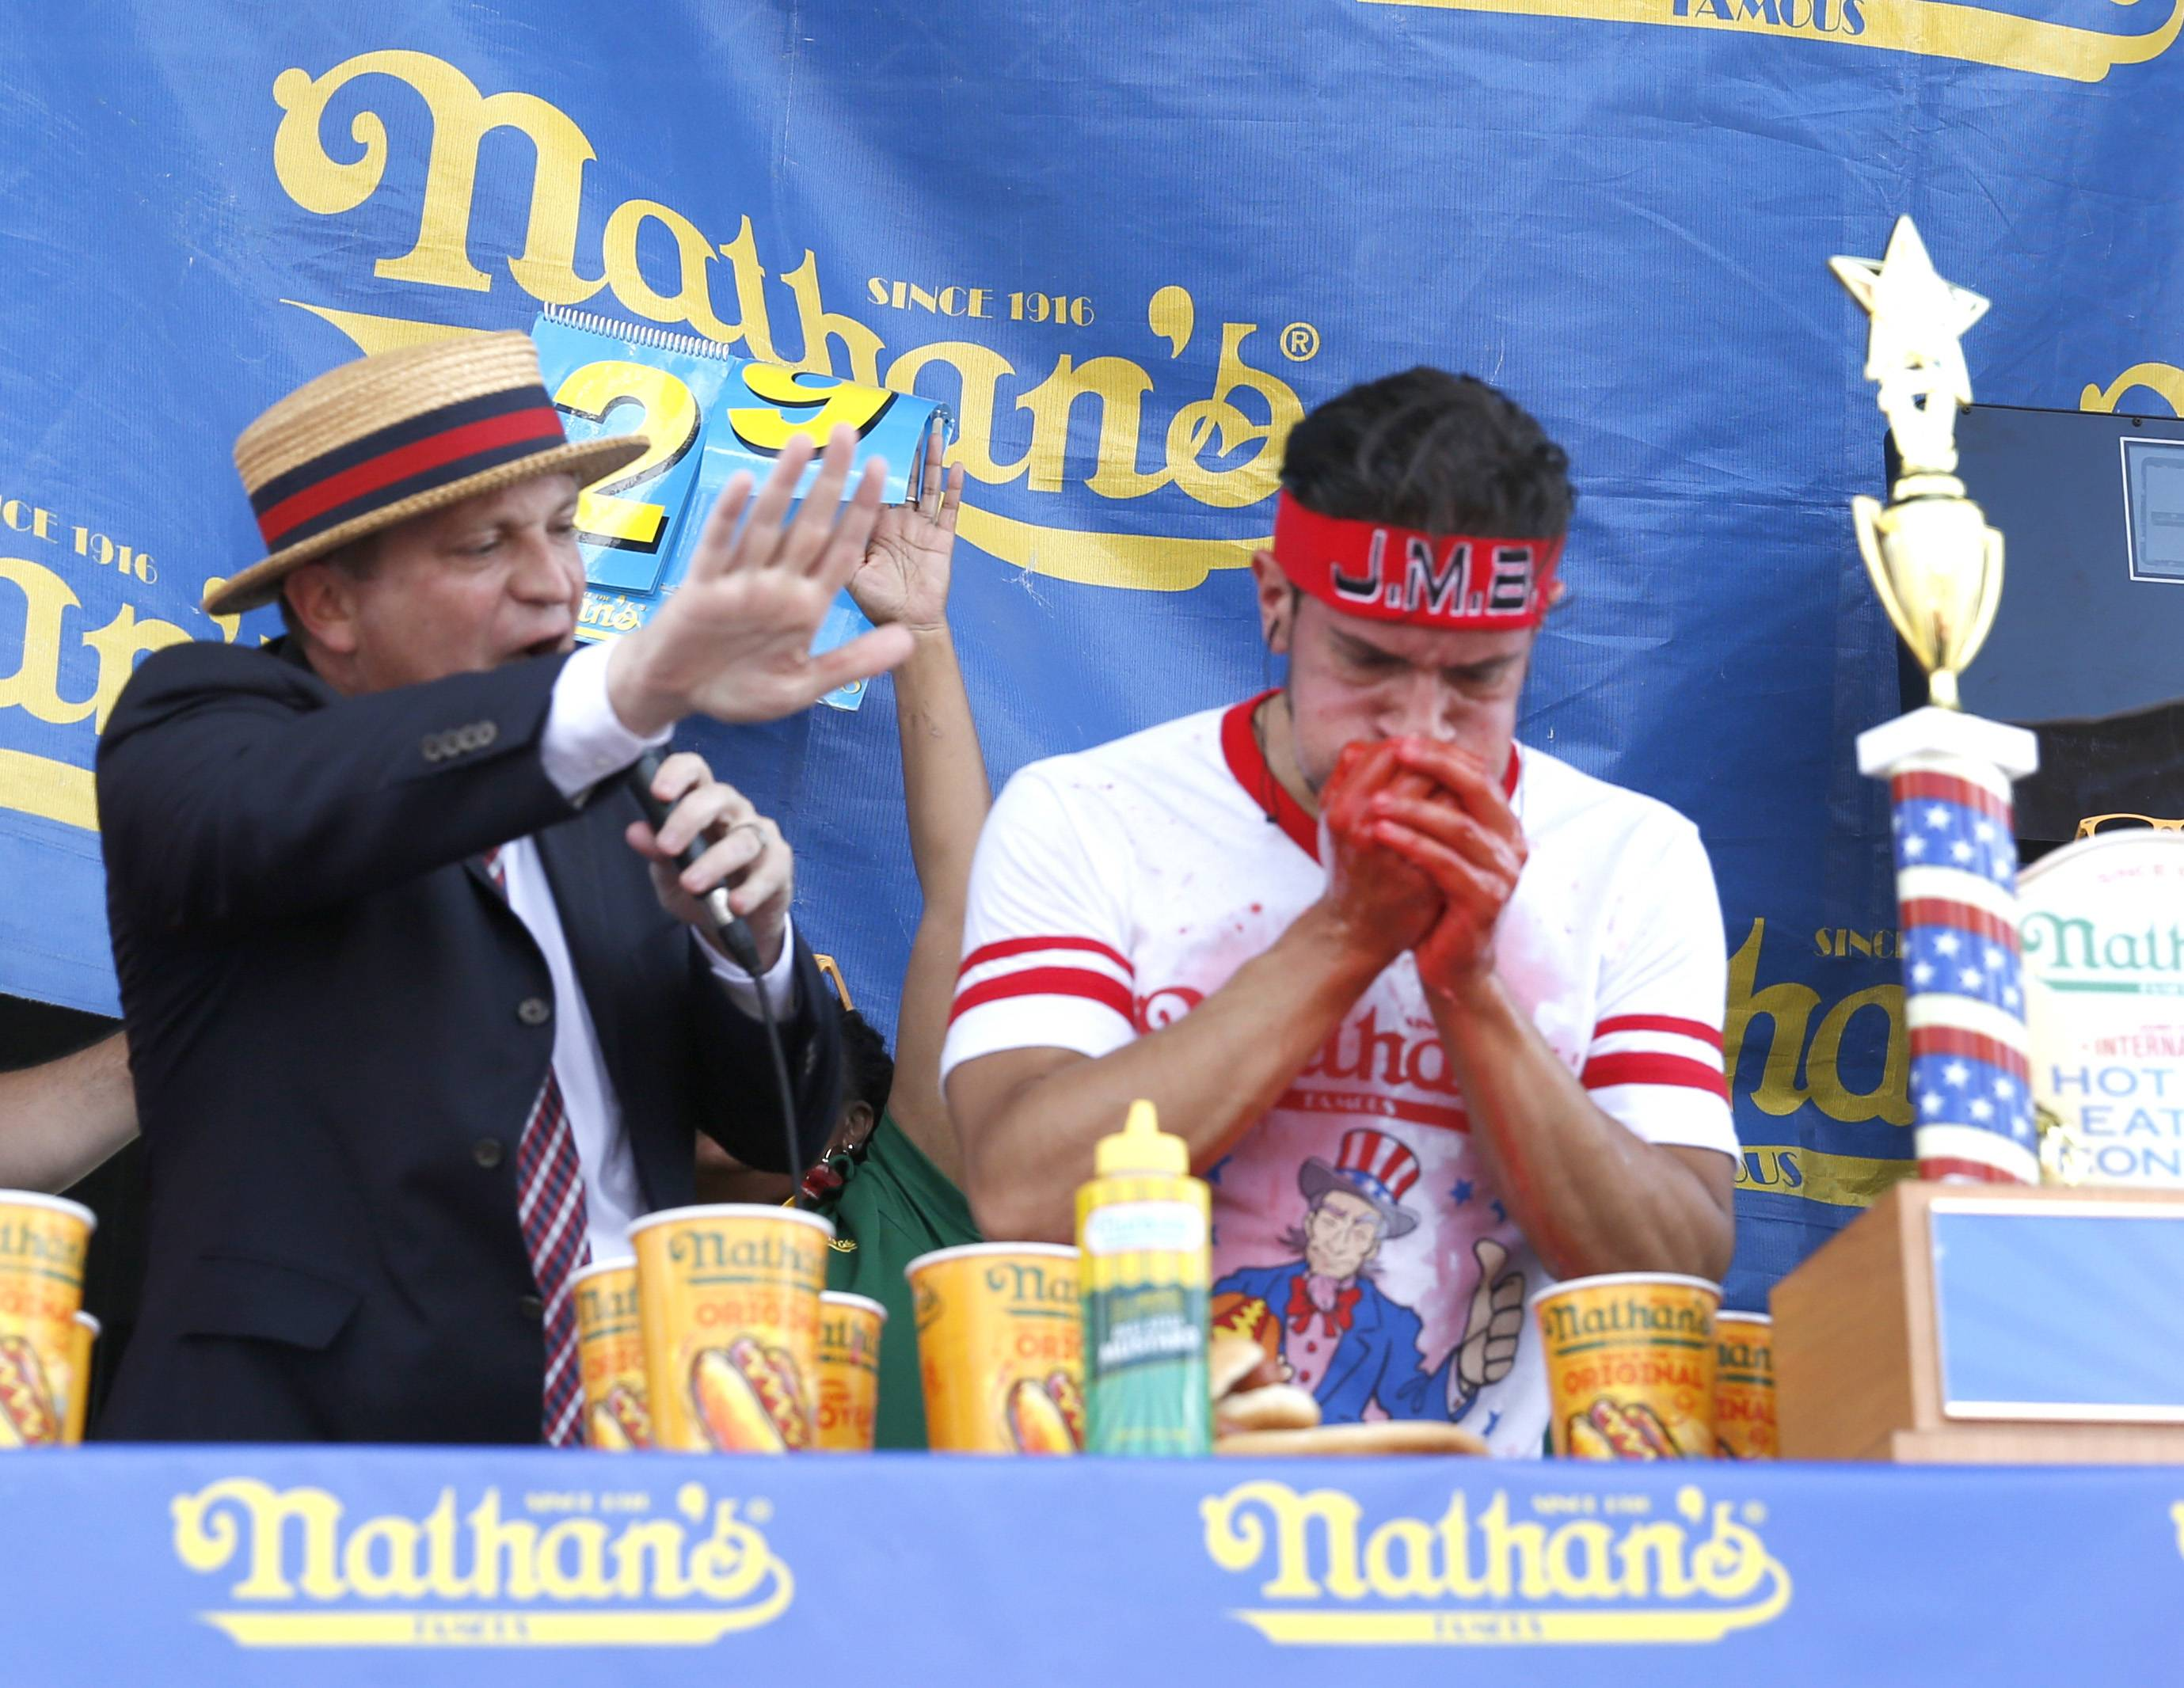 Juan Rodriguez, right, of Crestwood, wins a hot dog-eating contest Saturday at Naperville's Ribfest by downing 30½ dogs in 10 minutes as Emcee Sam Barclay provides the encouragement. Rodriguez qualified for a spot in Nathan's Famous Fourth of July Hot Dog Eating Contest in Coney Island, New York.